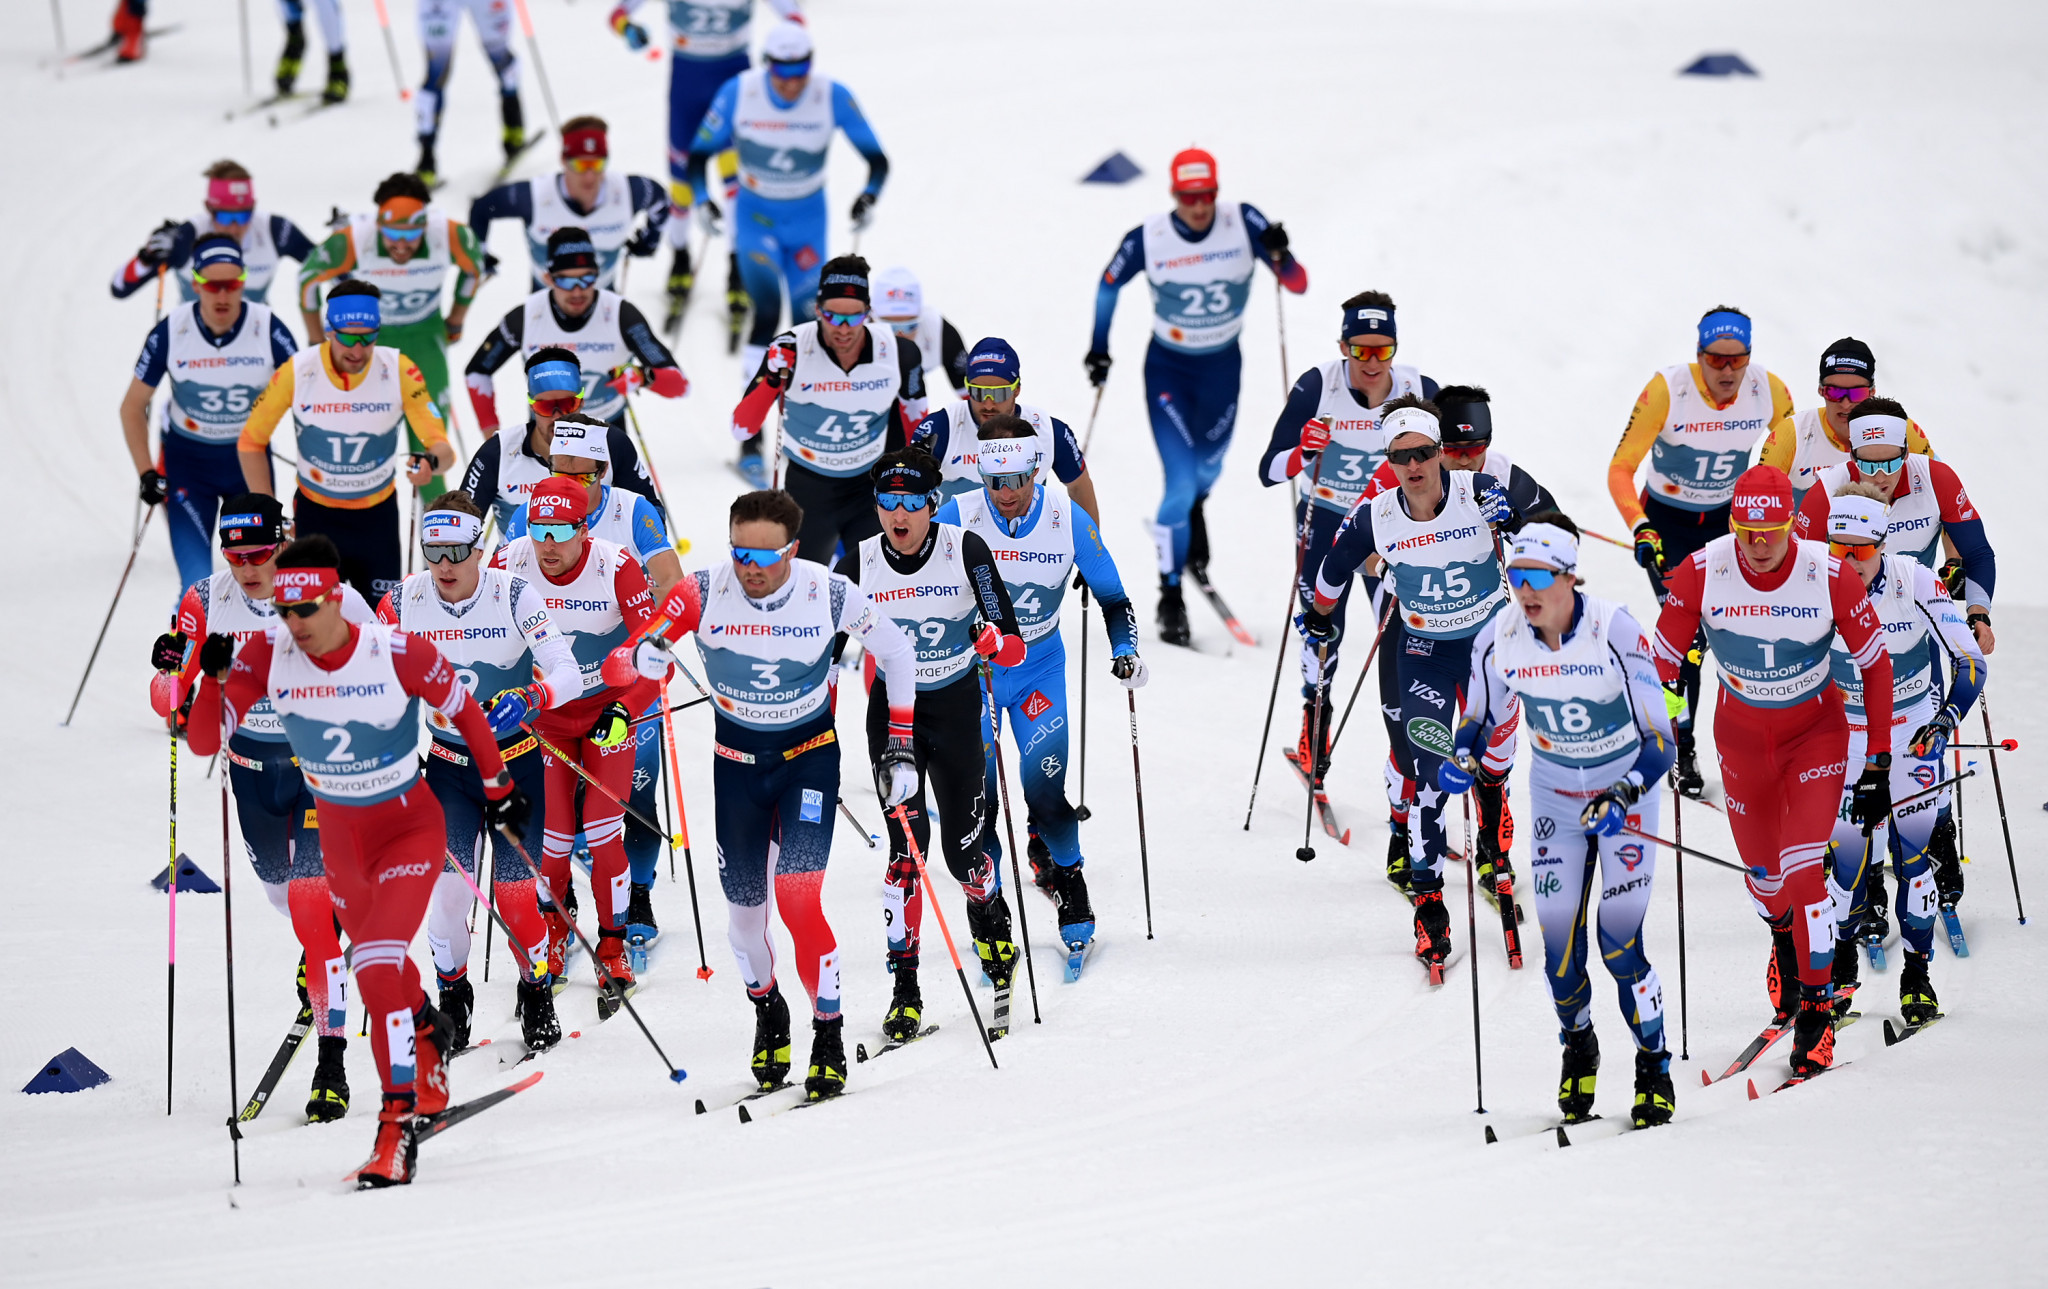 FIS releases draft plans for 2021-2022 Cross-Country World Cup season